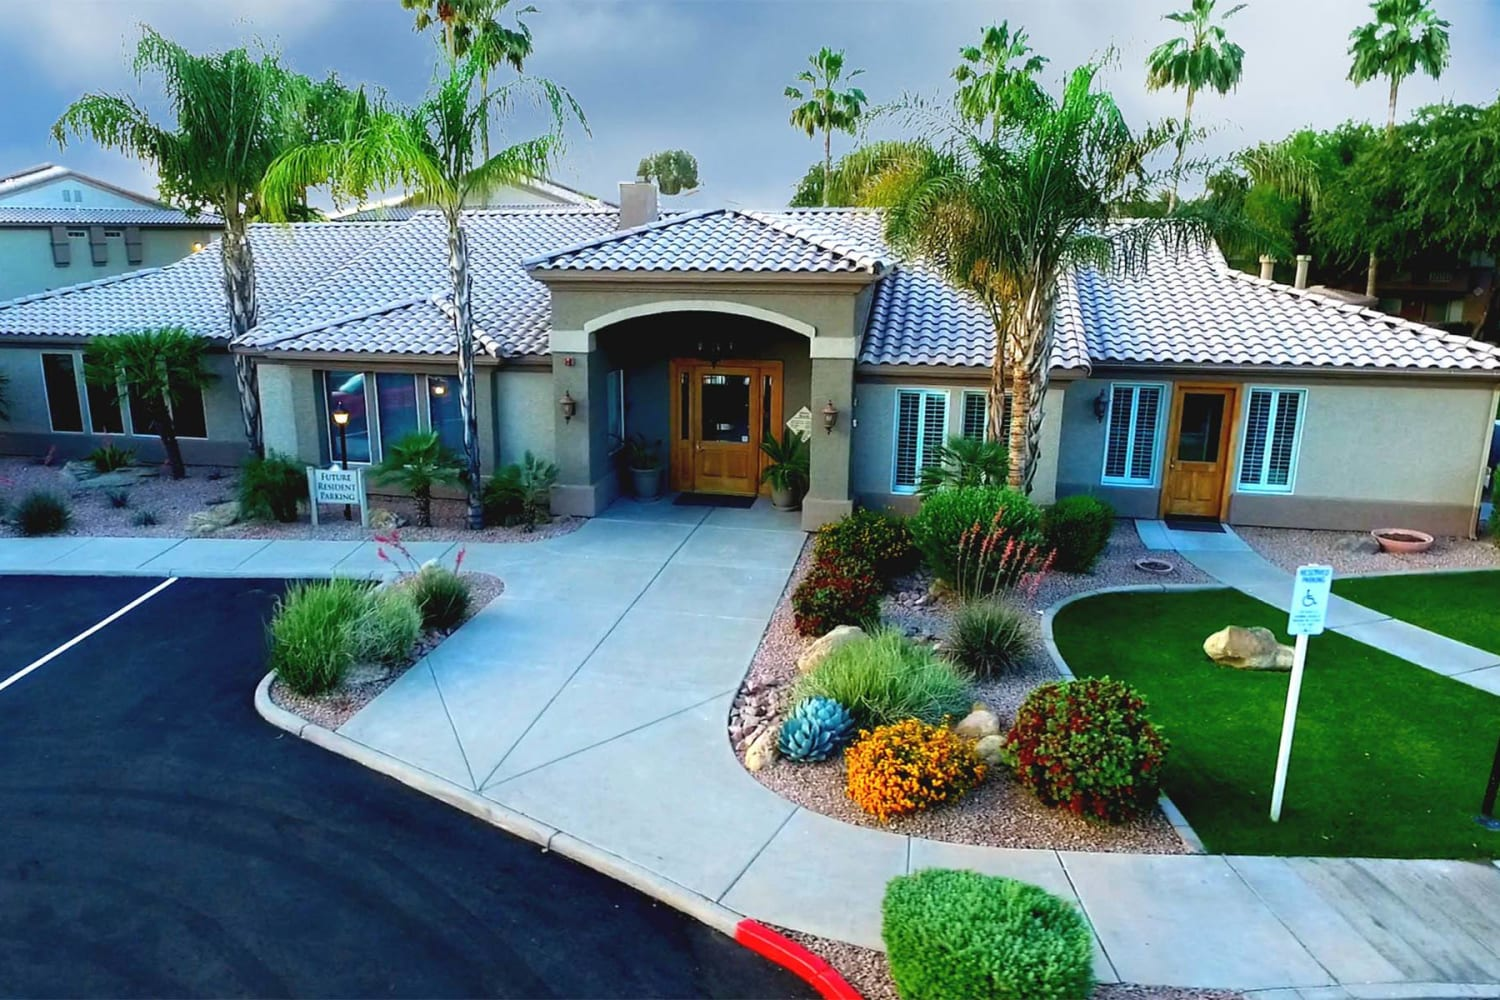 Well-maintained grounds at Ocotillo Bay Apartments in Chandler, Arizona